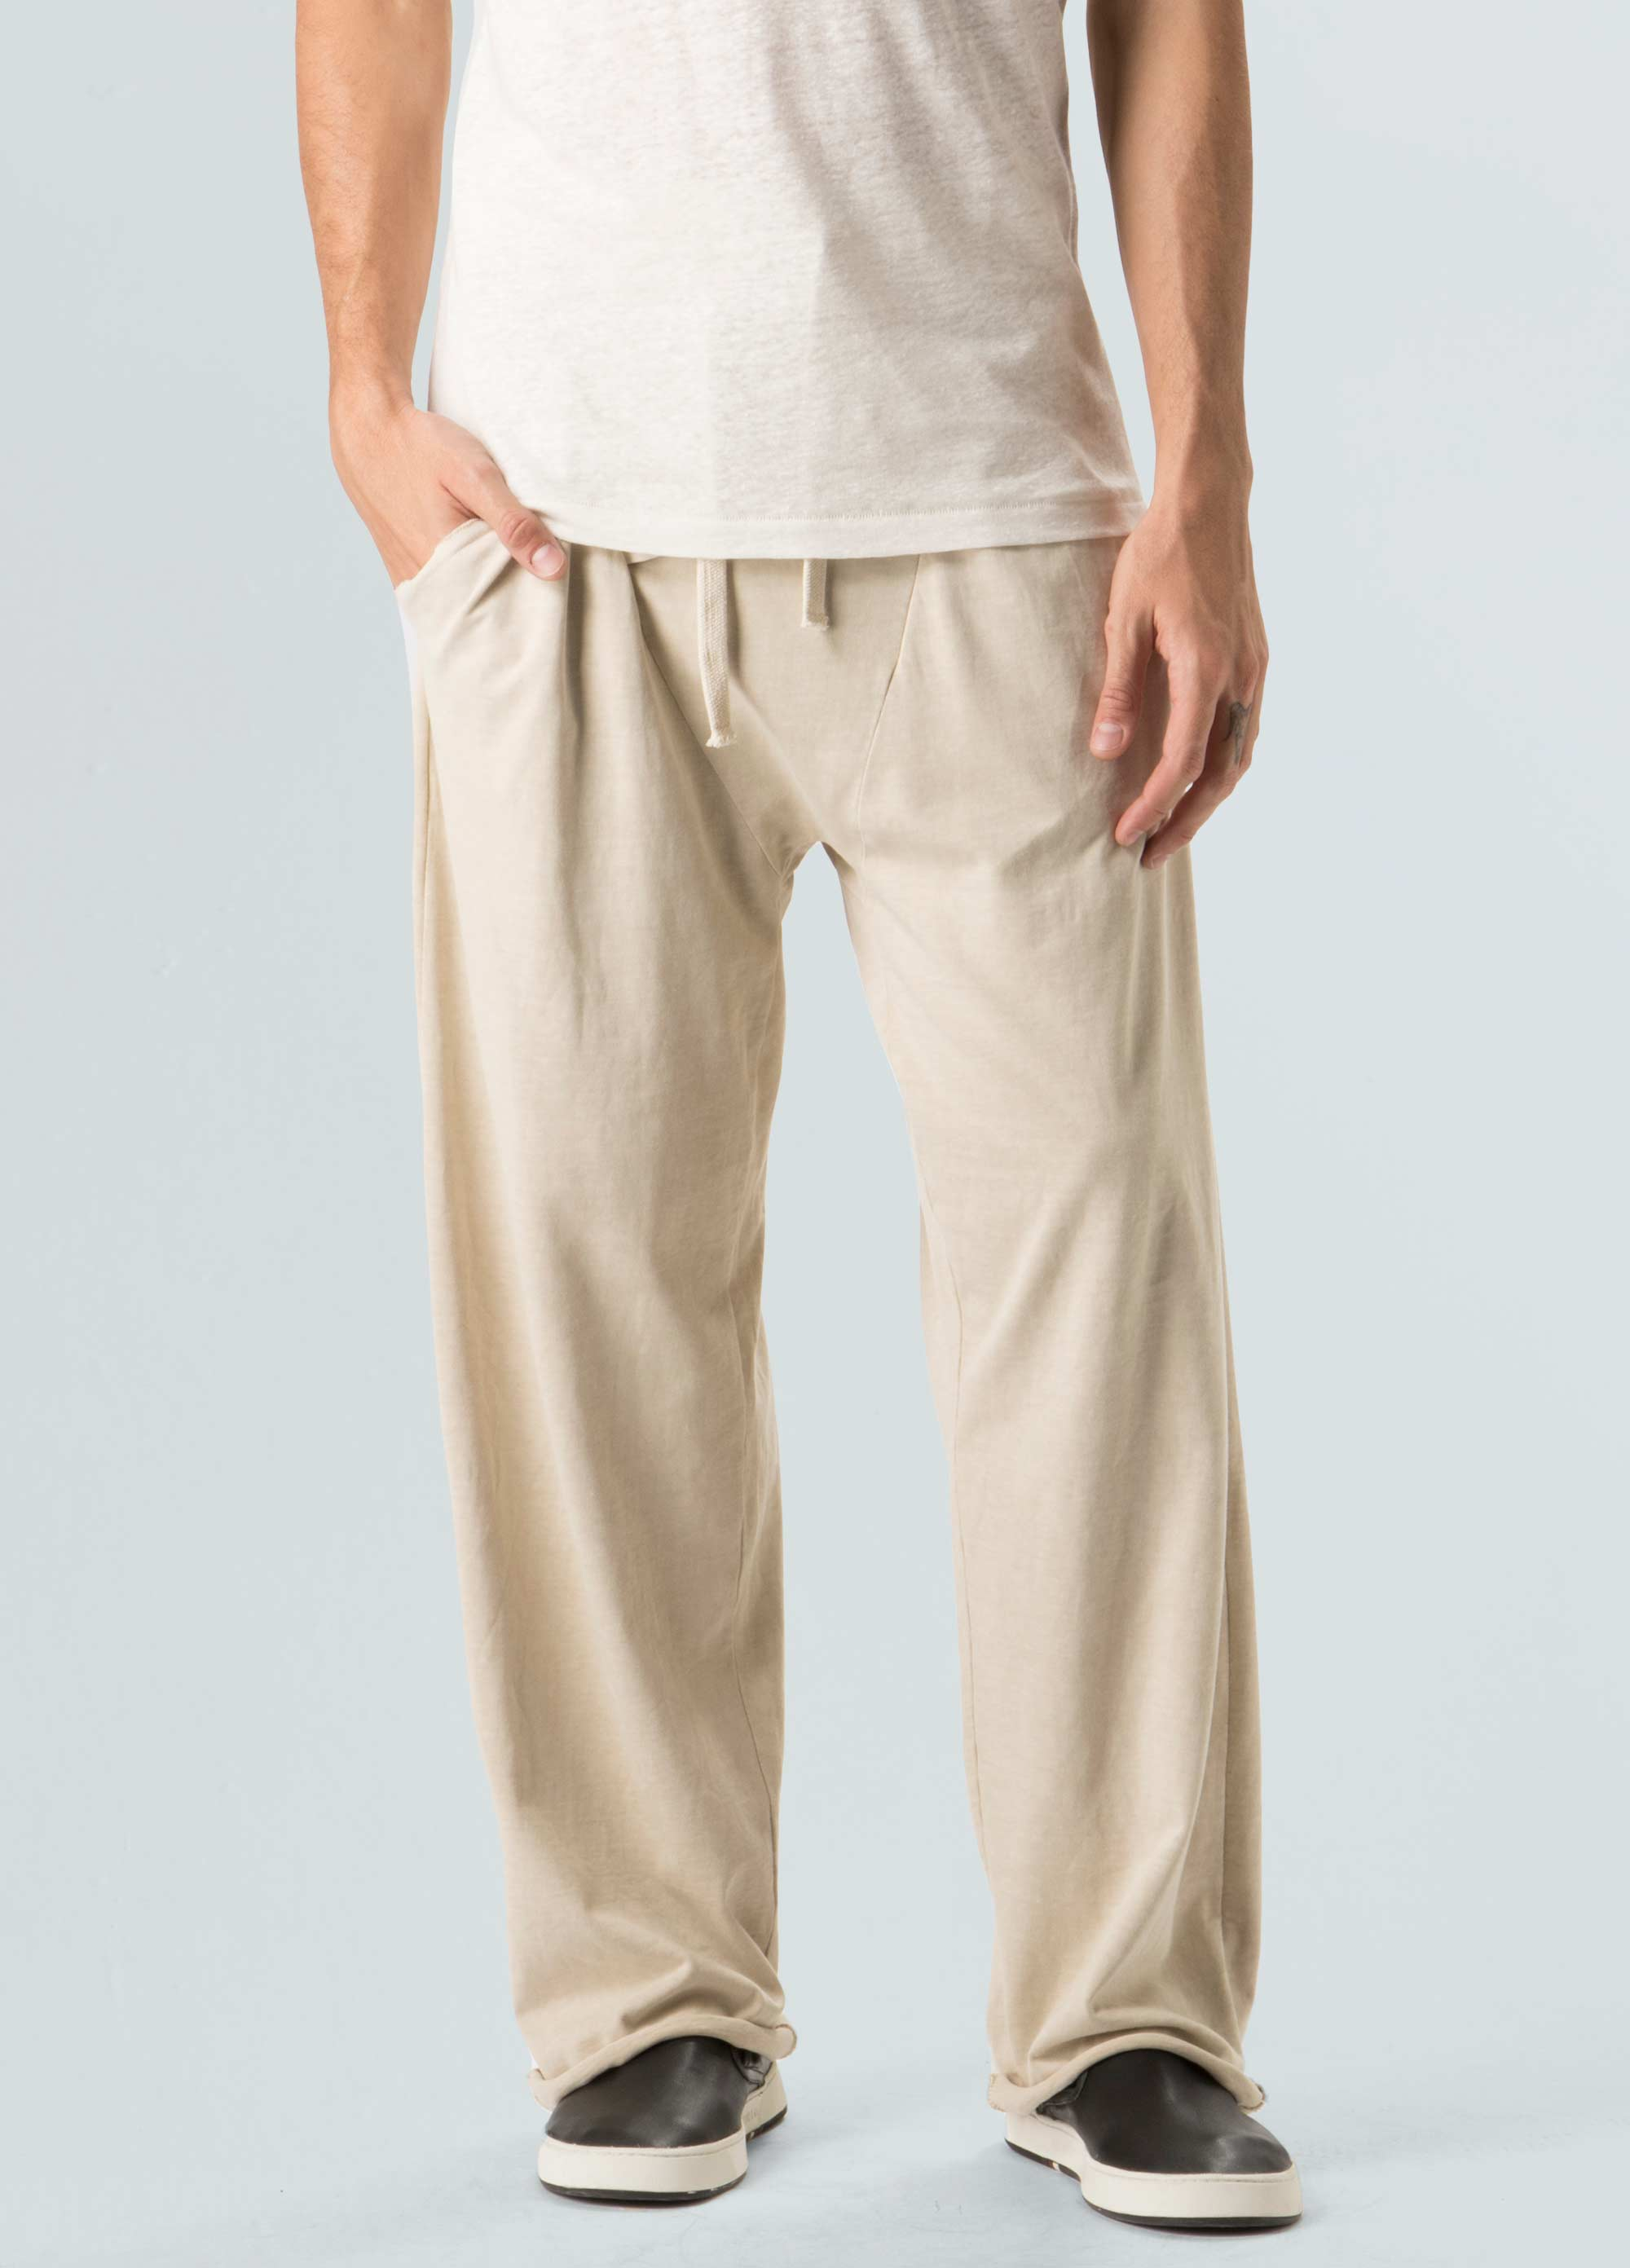 Nirvana Washed Cut Pocket Pants